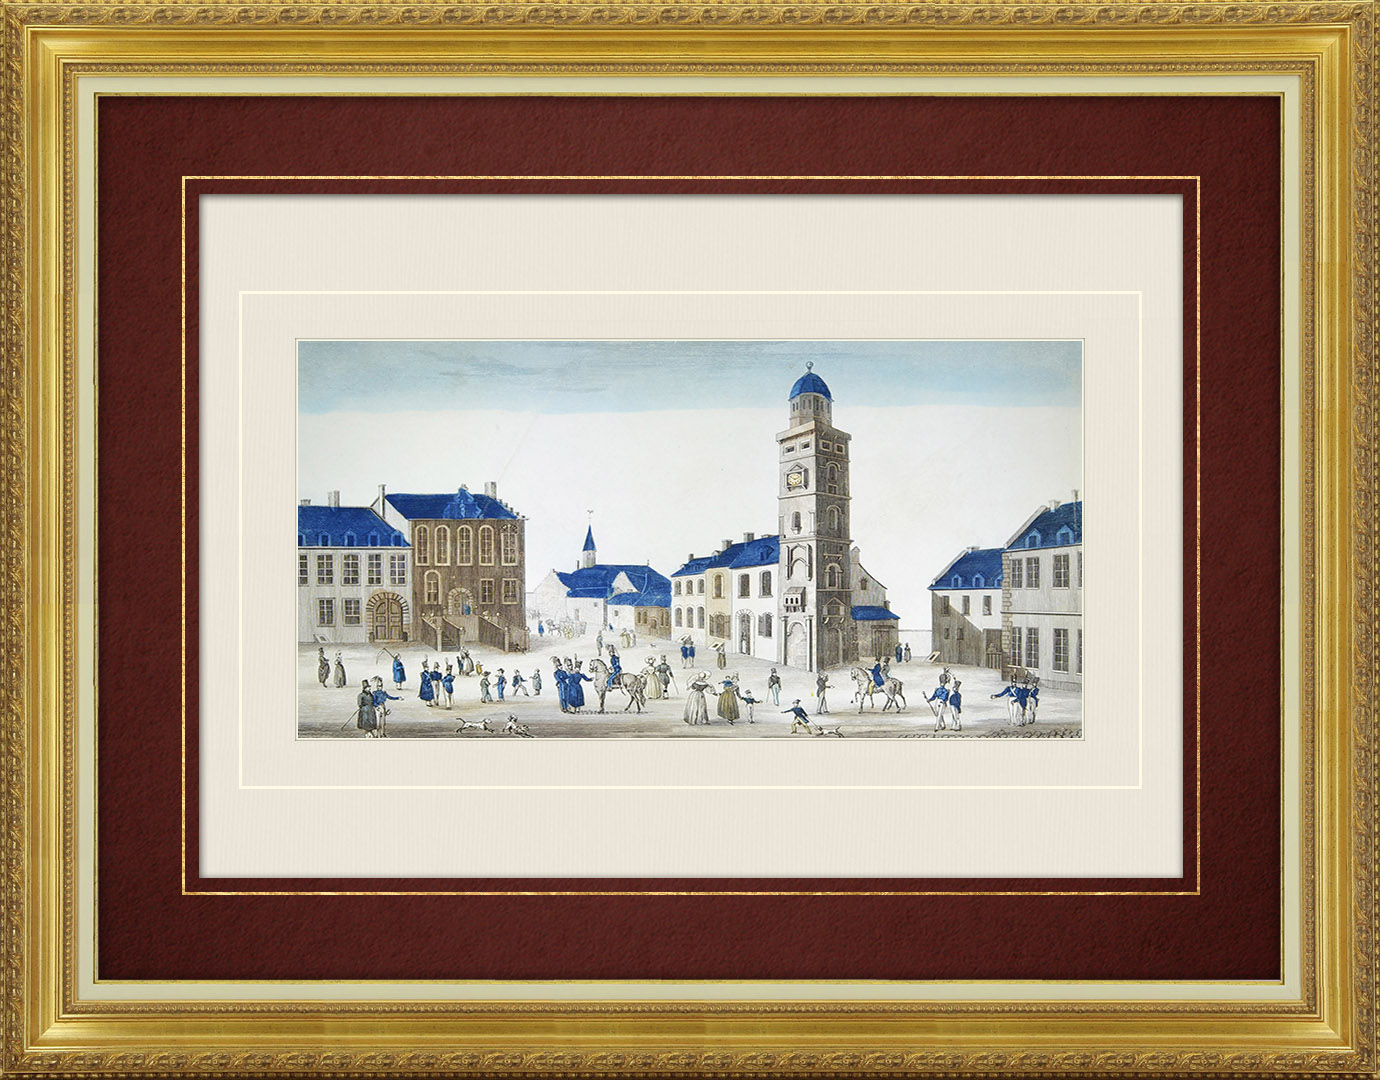 19th Century optical view in original watercolors of Place d'Armes in Gravelines (France)